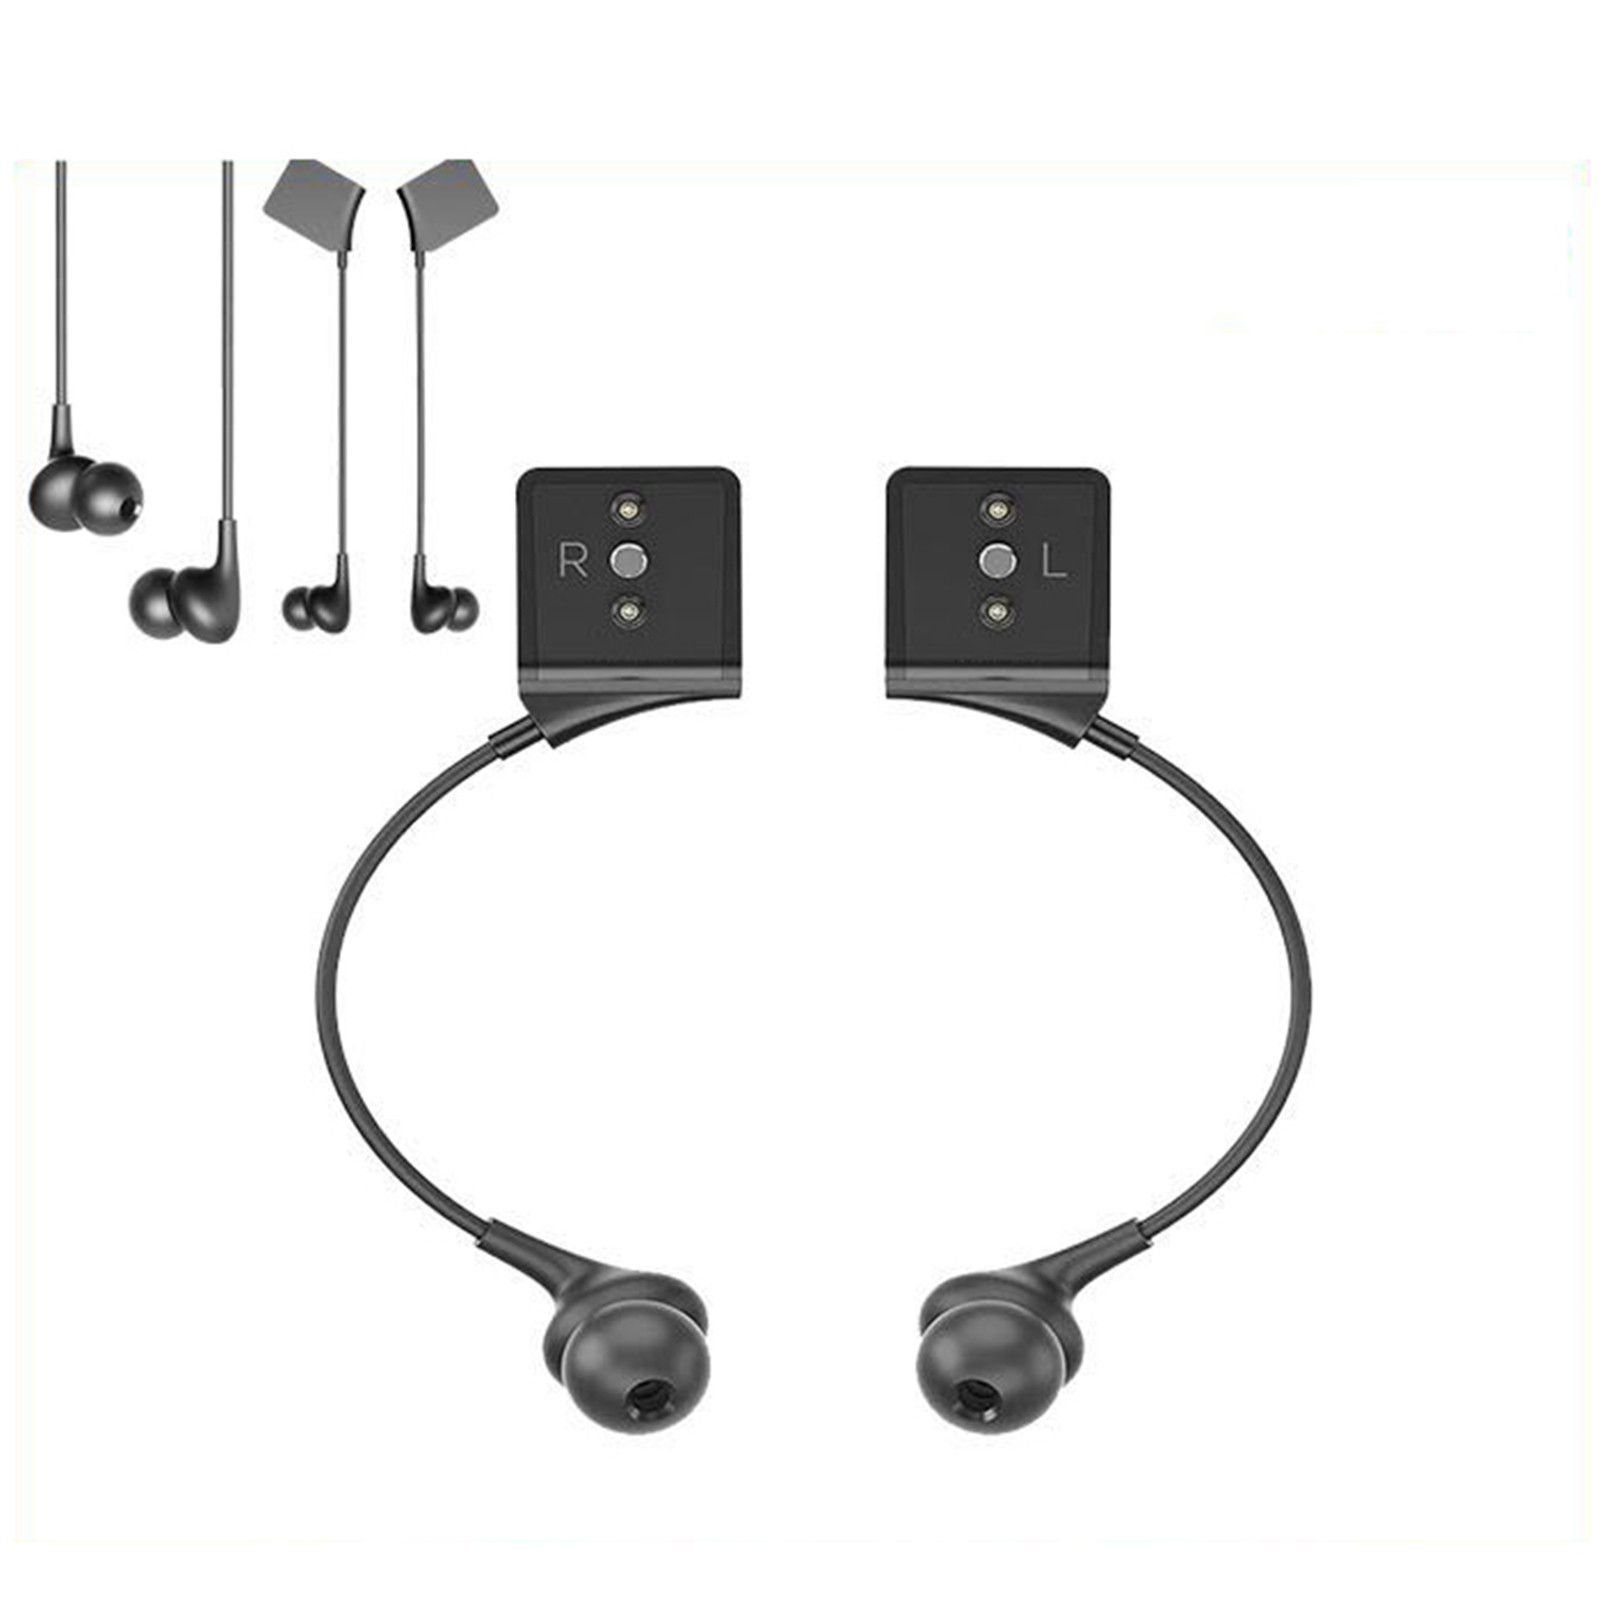 1pair Replacement VR Headset Earphones For Oculus Rift Accessories Noise Isolating On-Ear Earphone For Oculus Rift CV1 Headset